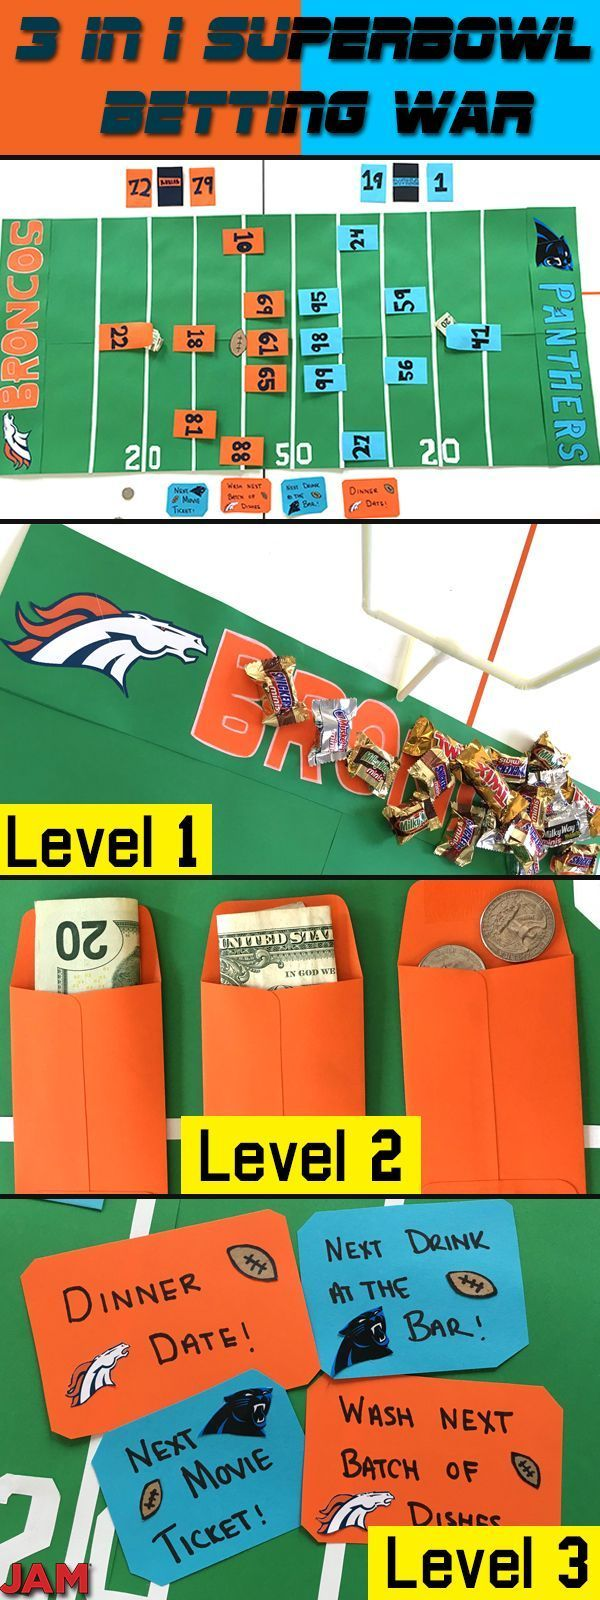 Football party betting games minecraft train carts 1-3 2-4 betting system